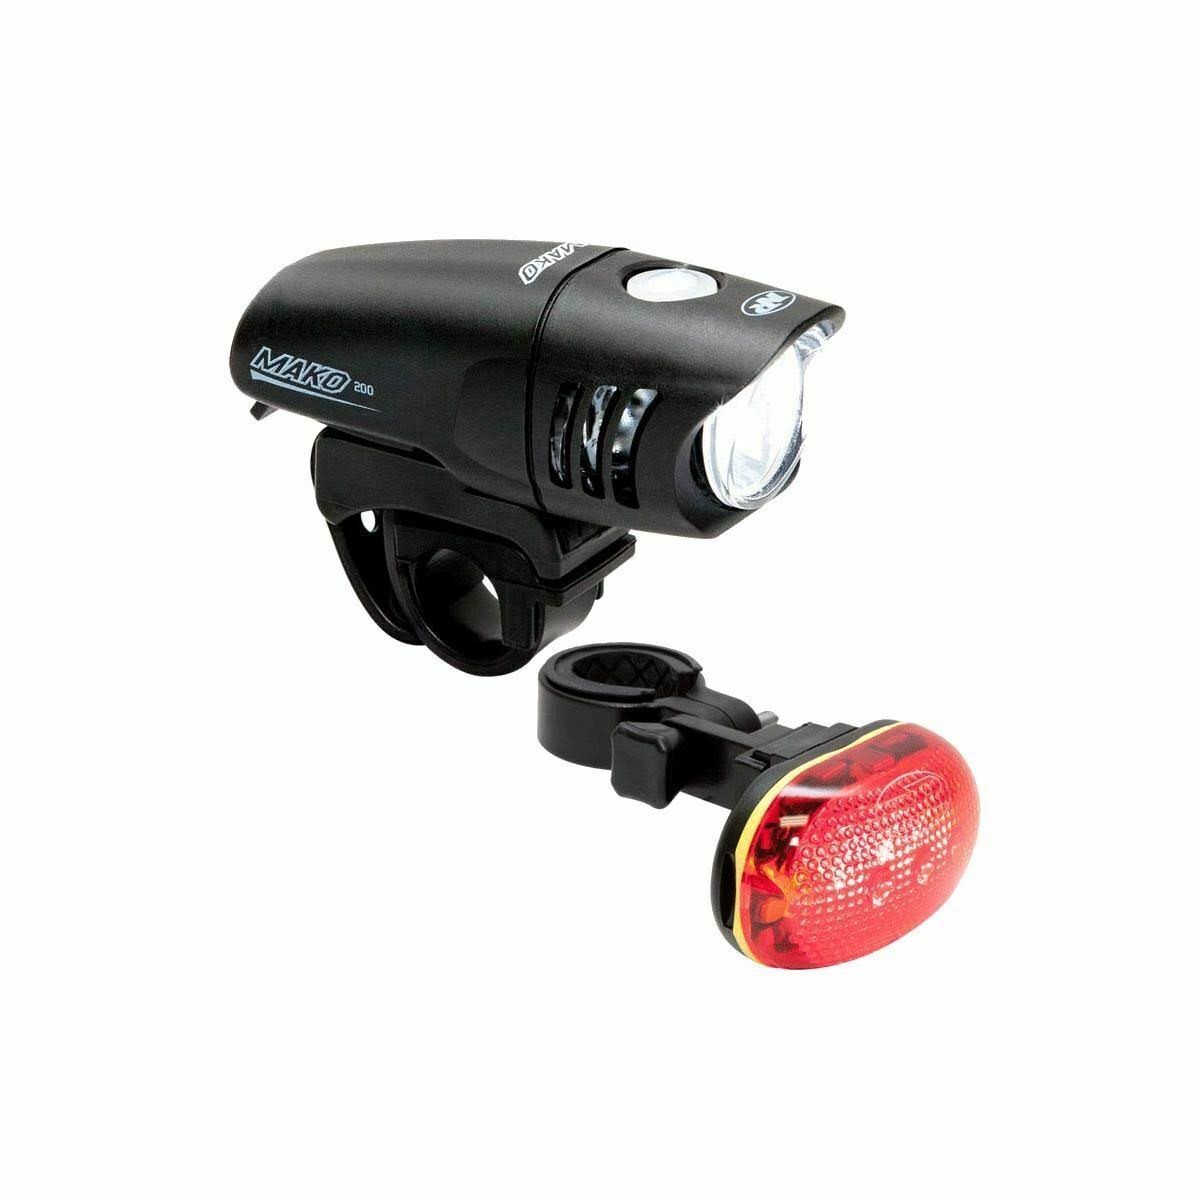 NiteRider Mako 200 and TL 5.0 SL Combo Bicycle Light Set